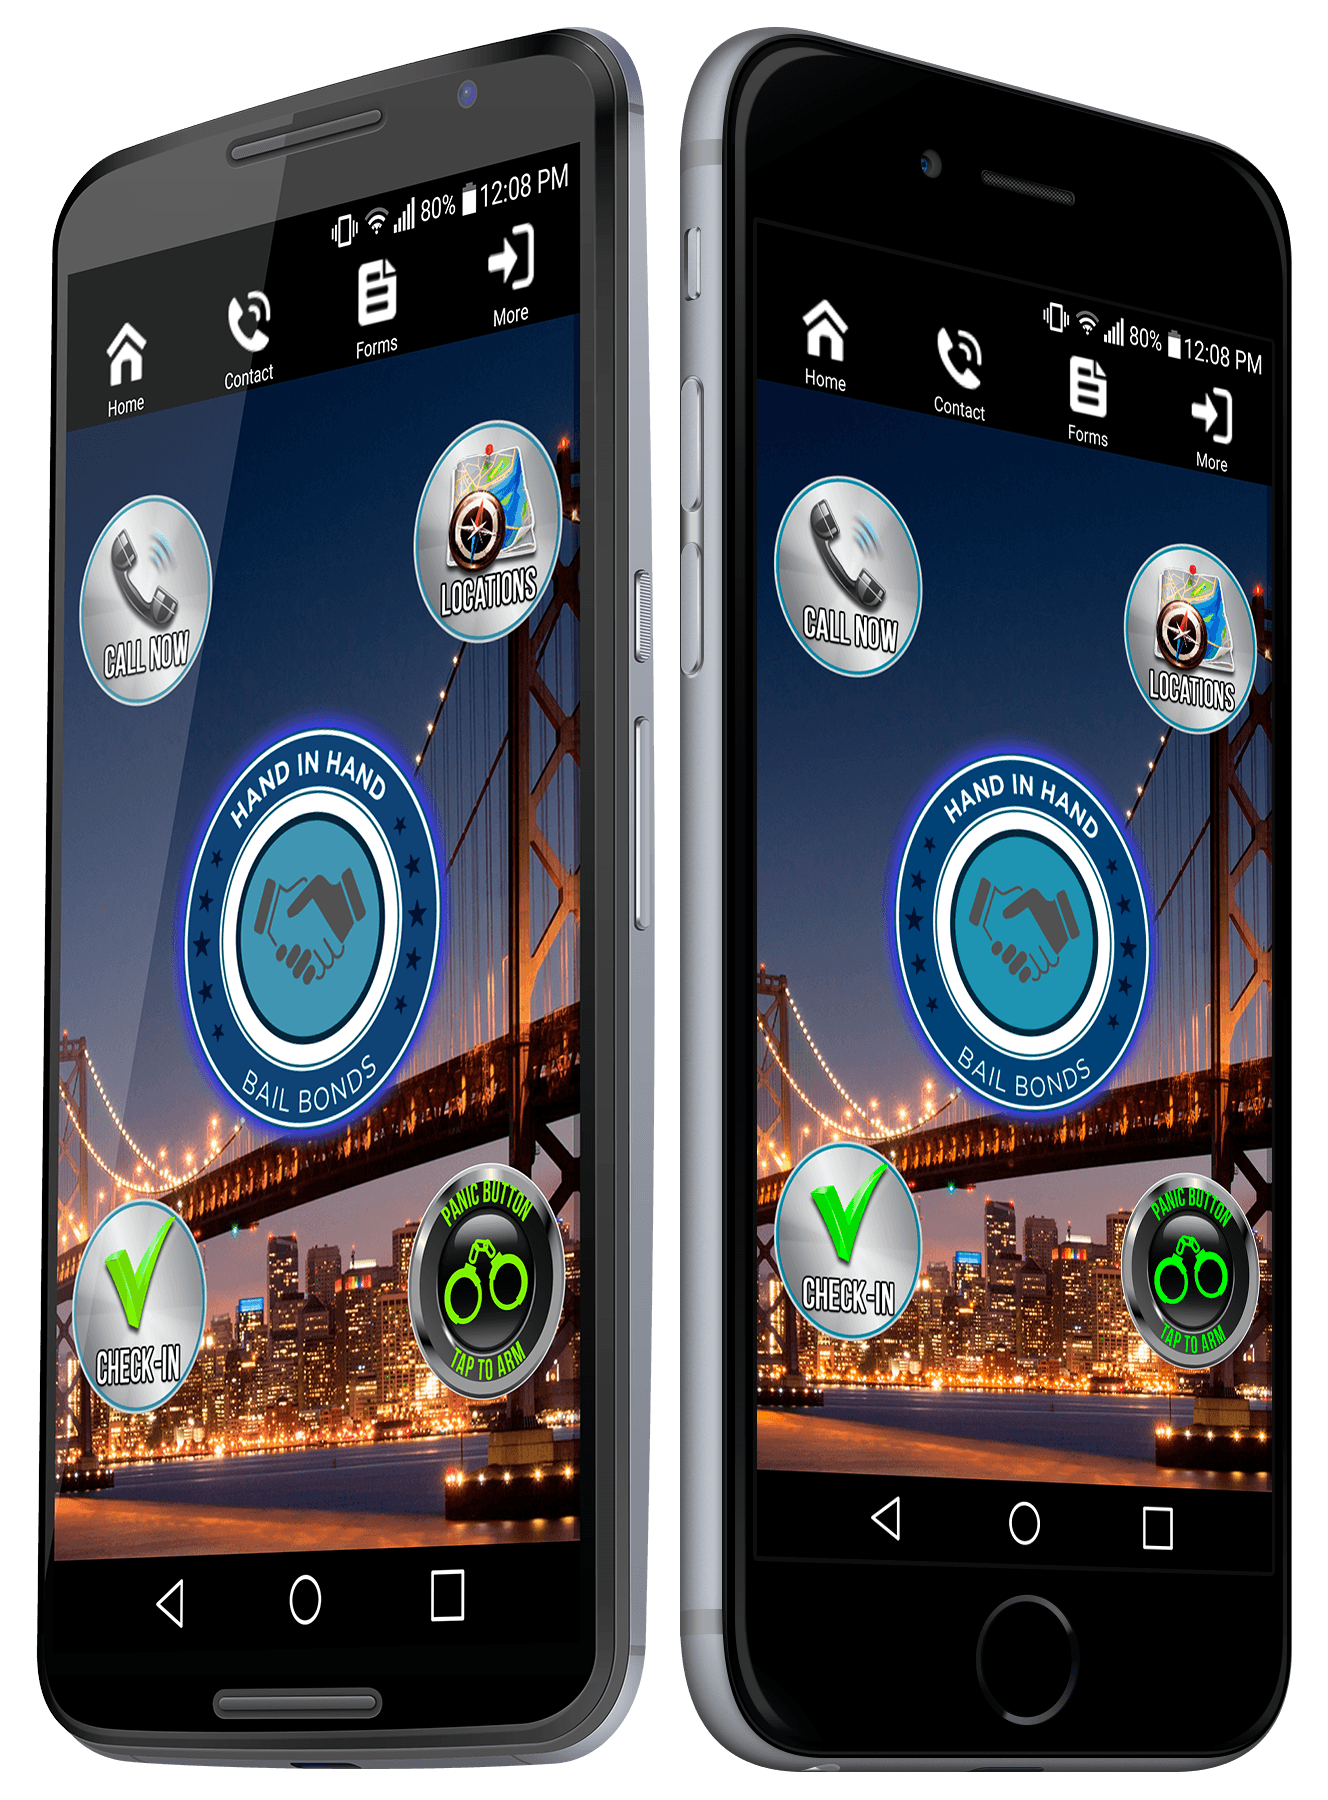 Fairfeild Bail Bonds Mobile Application